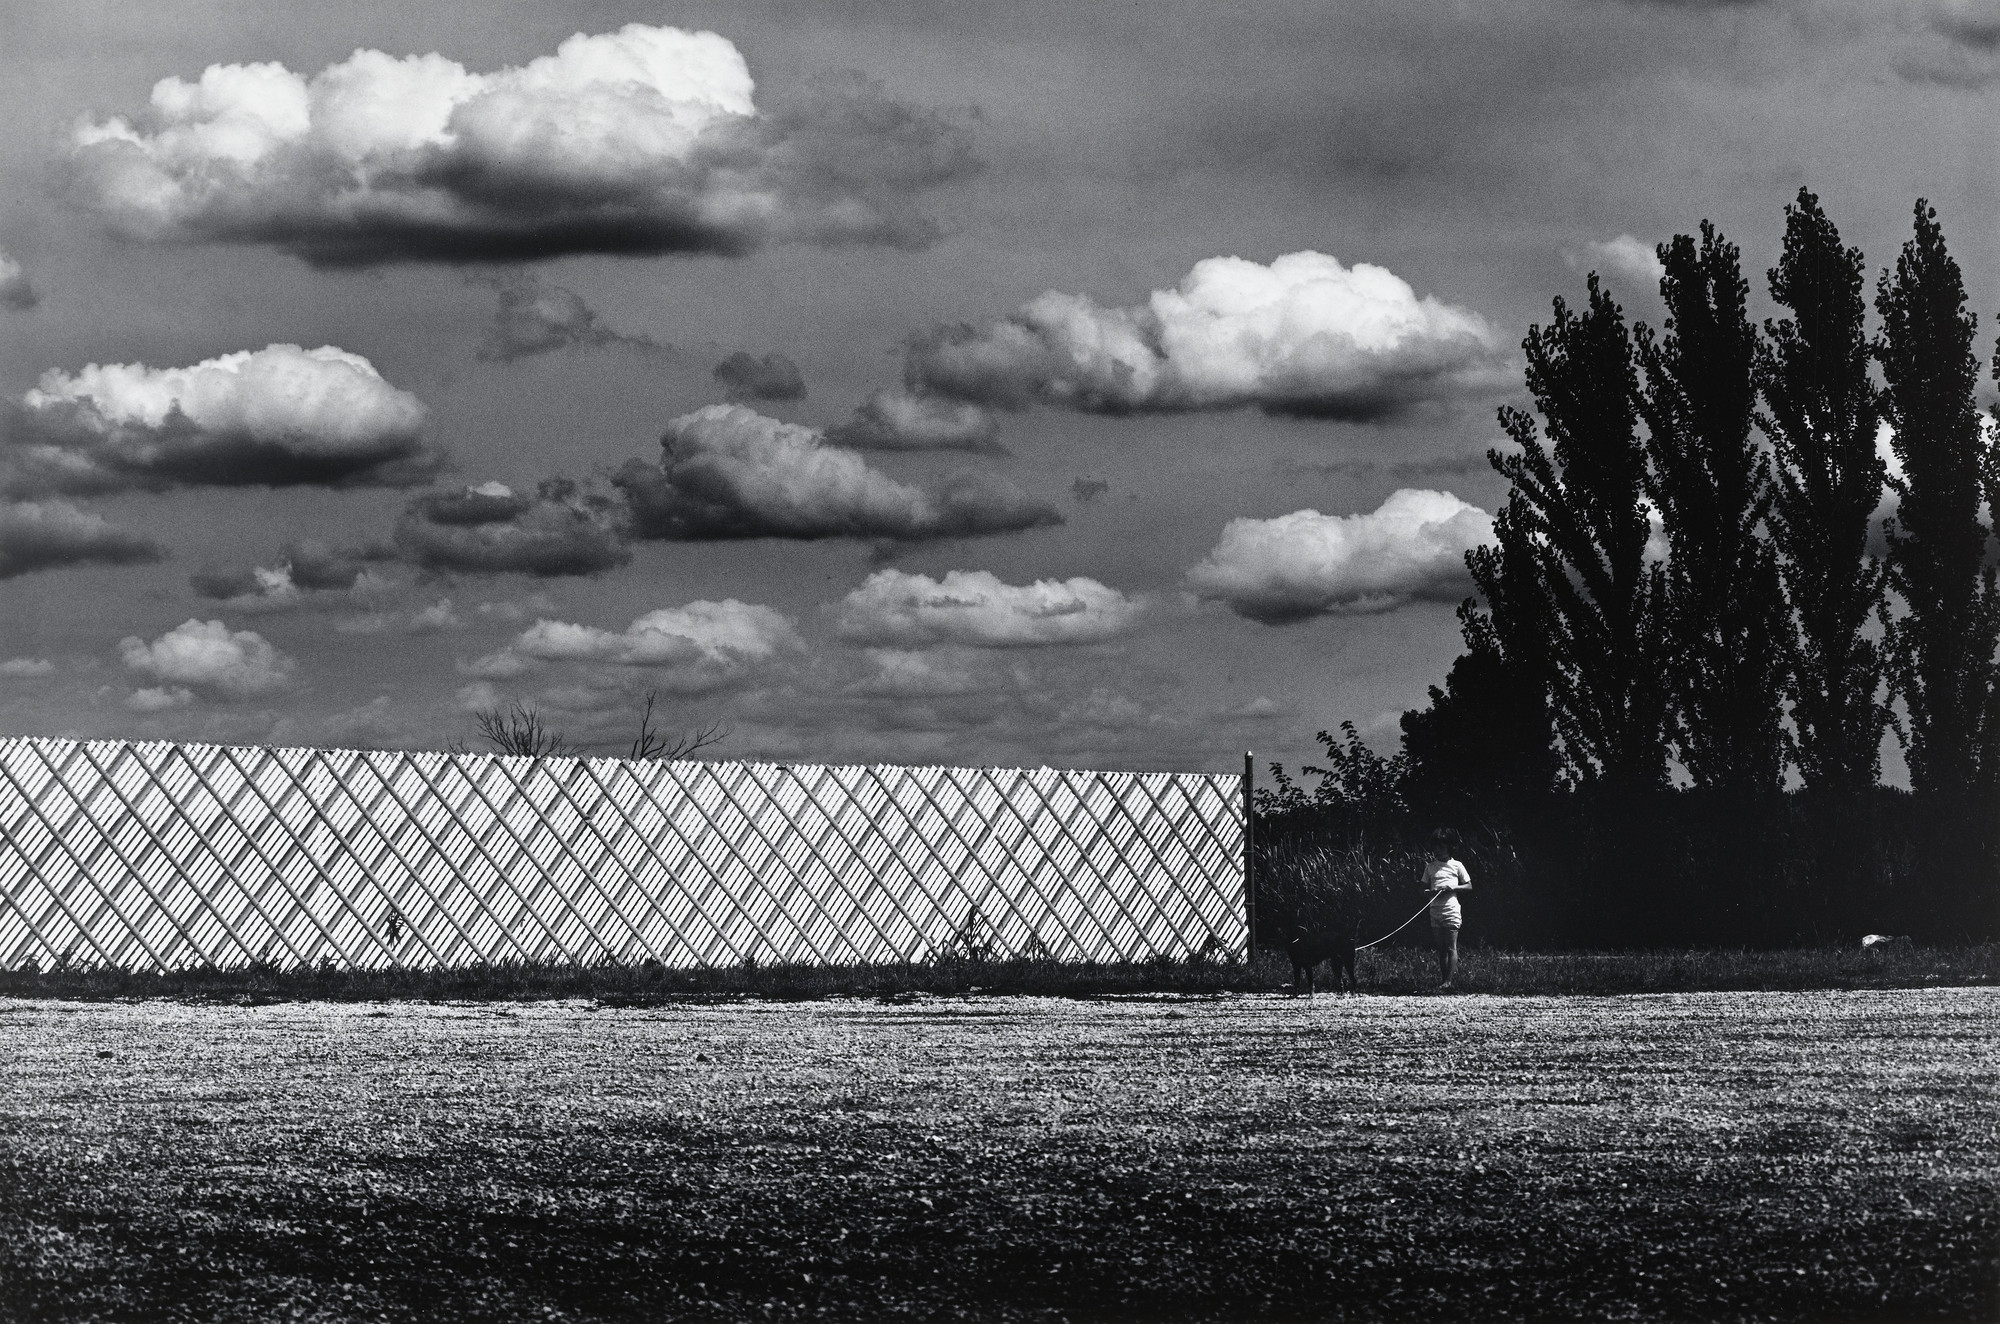 Ikko (Ikko Narahara). Long Fence, Illinois. 1972